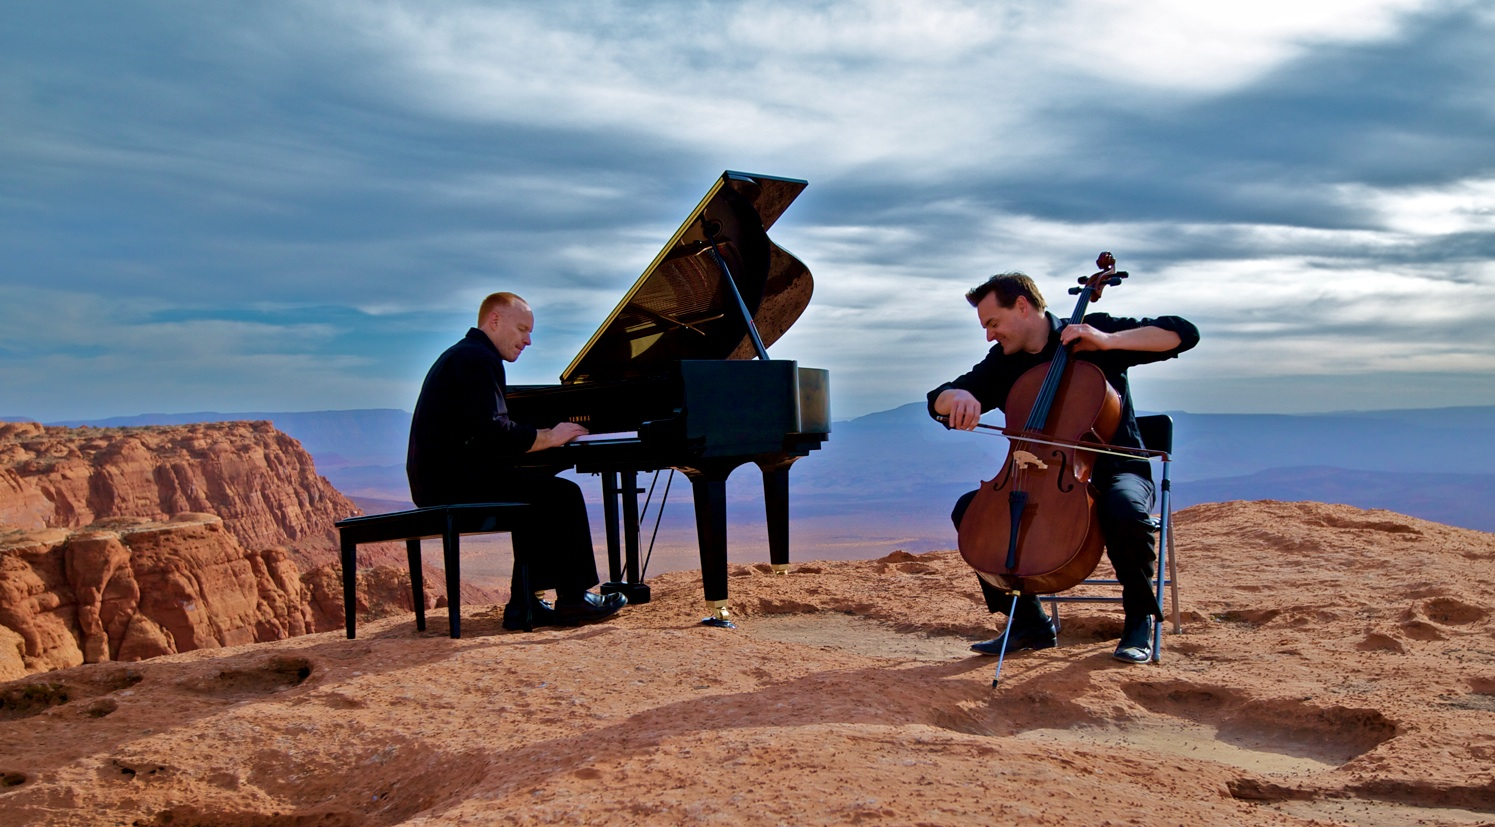 Featured Artist Spotlight: The Piano Guys